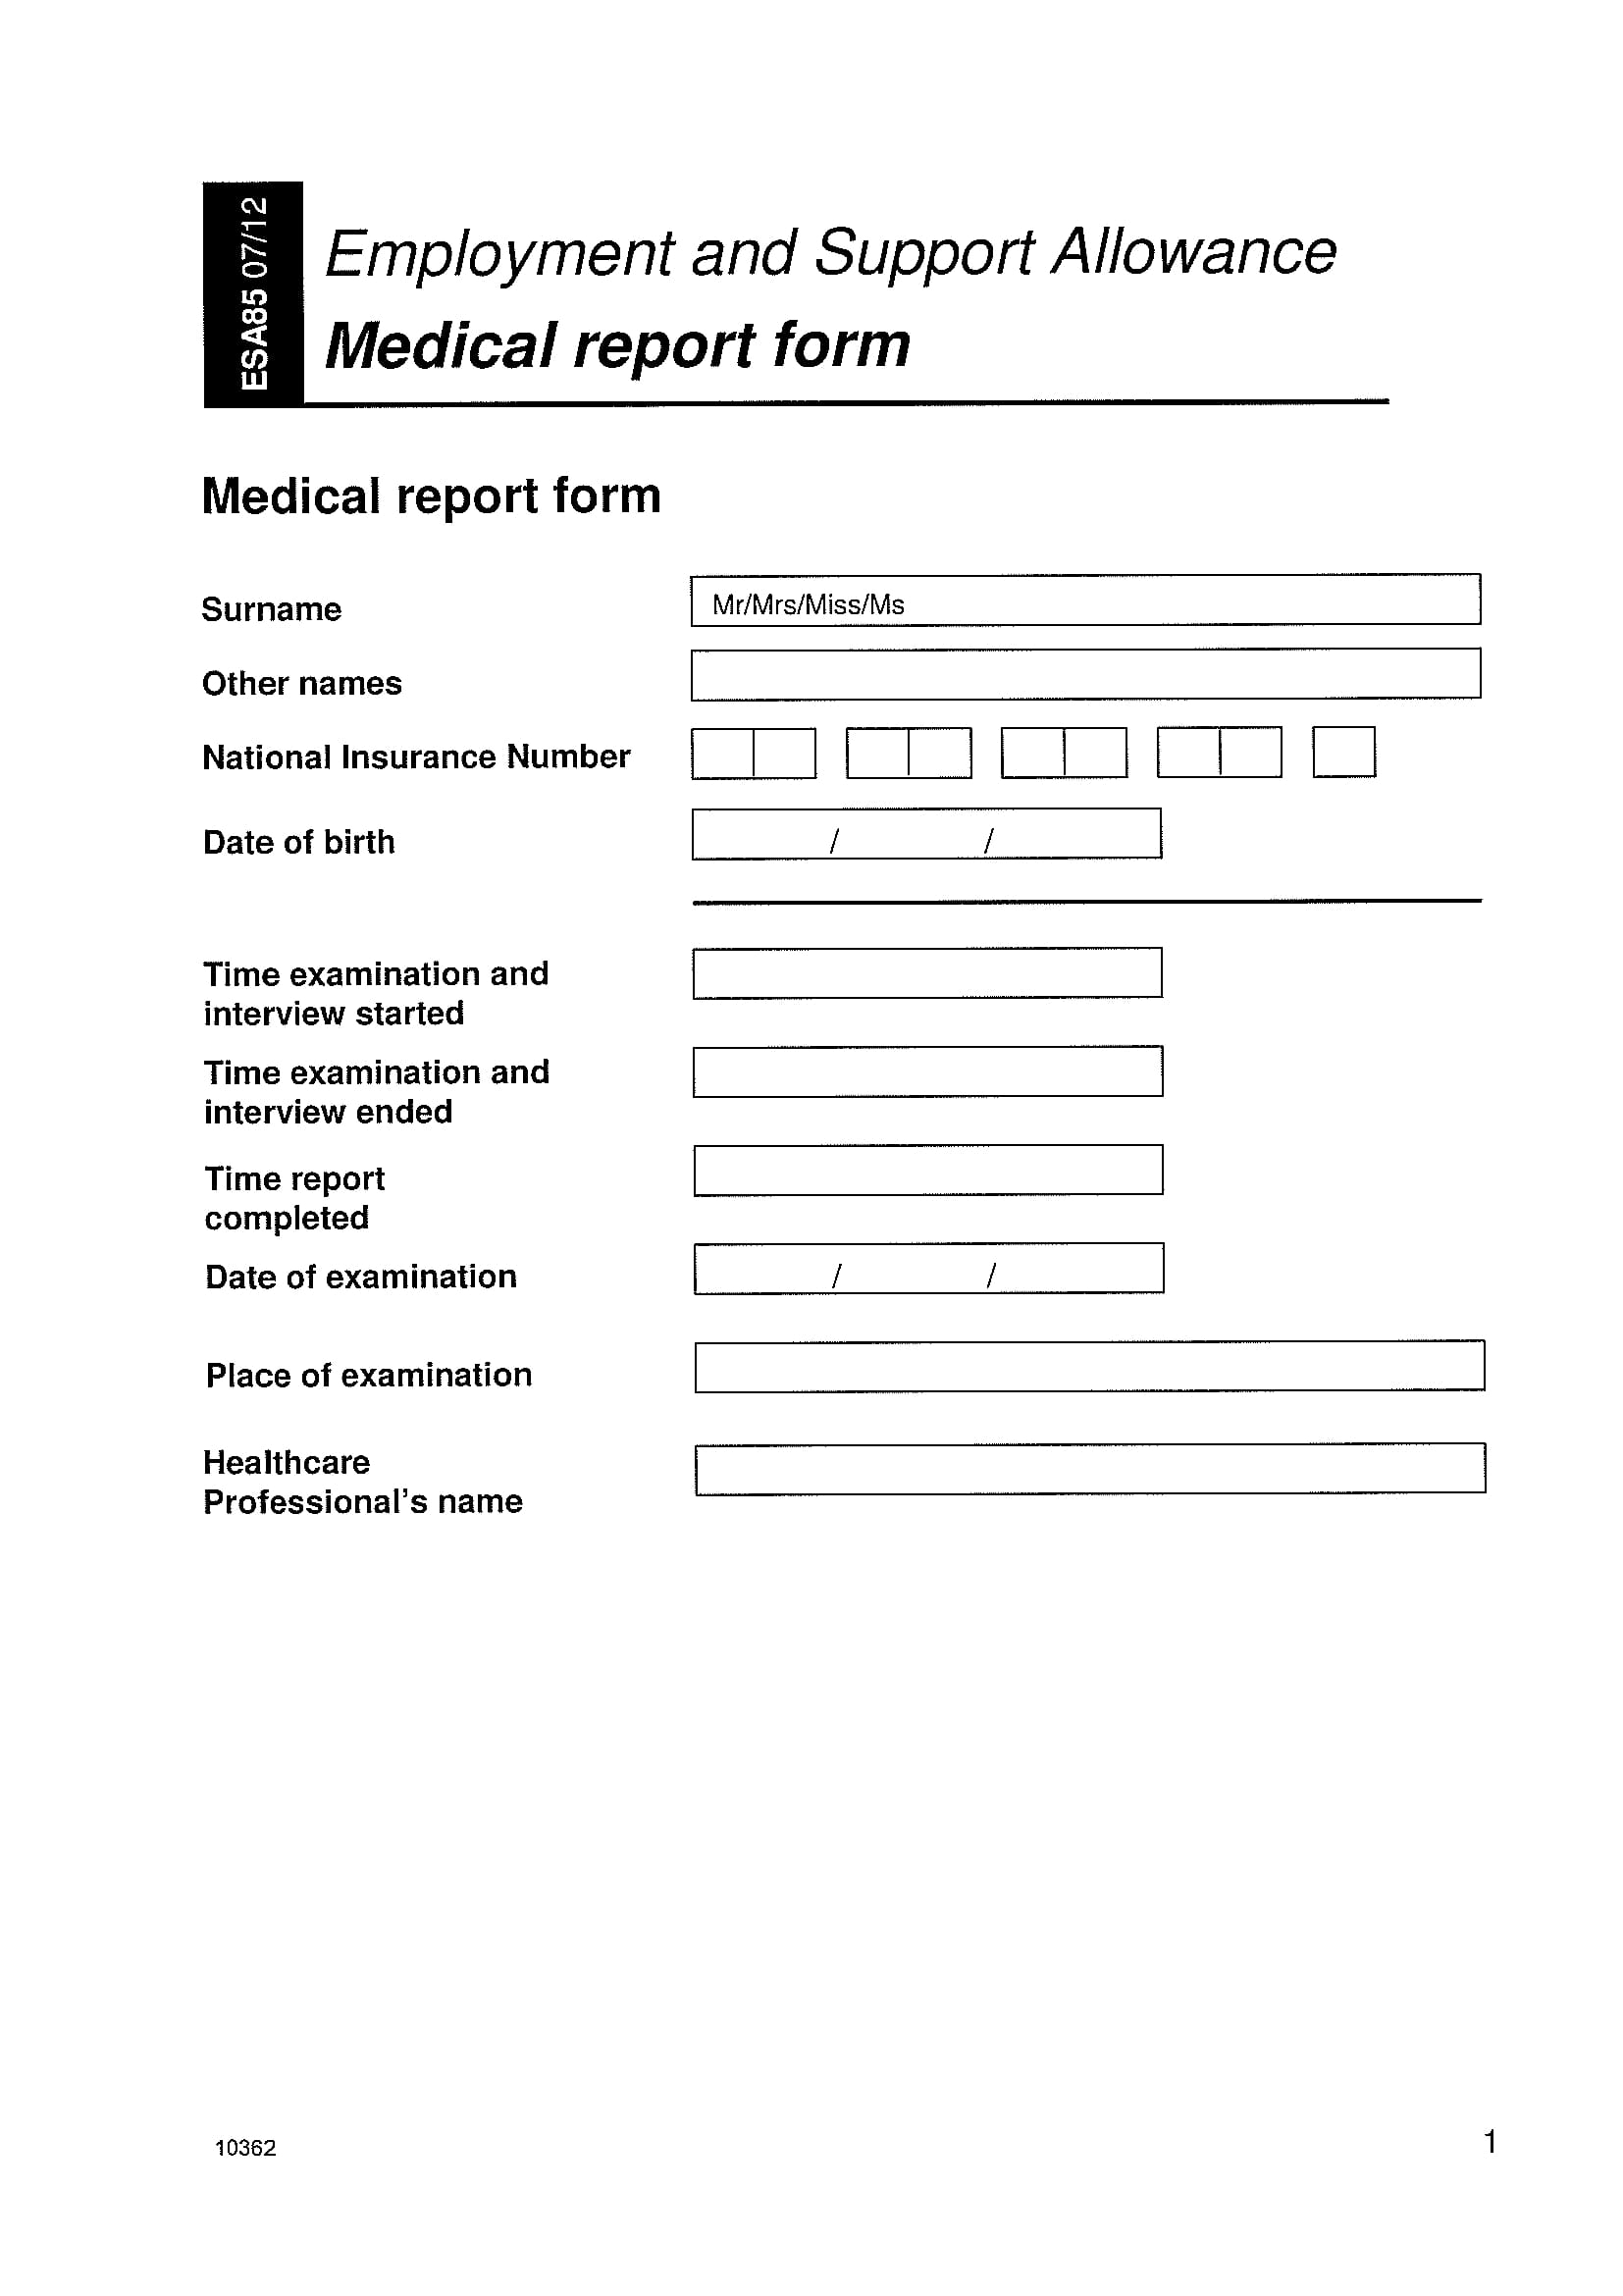 employment medical report form 01